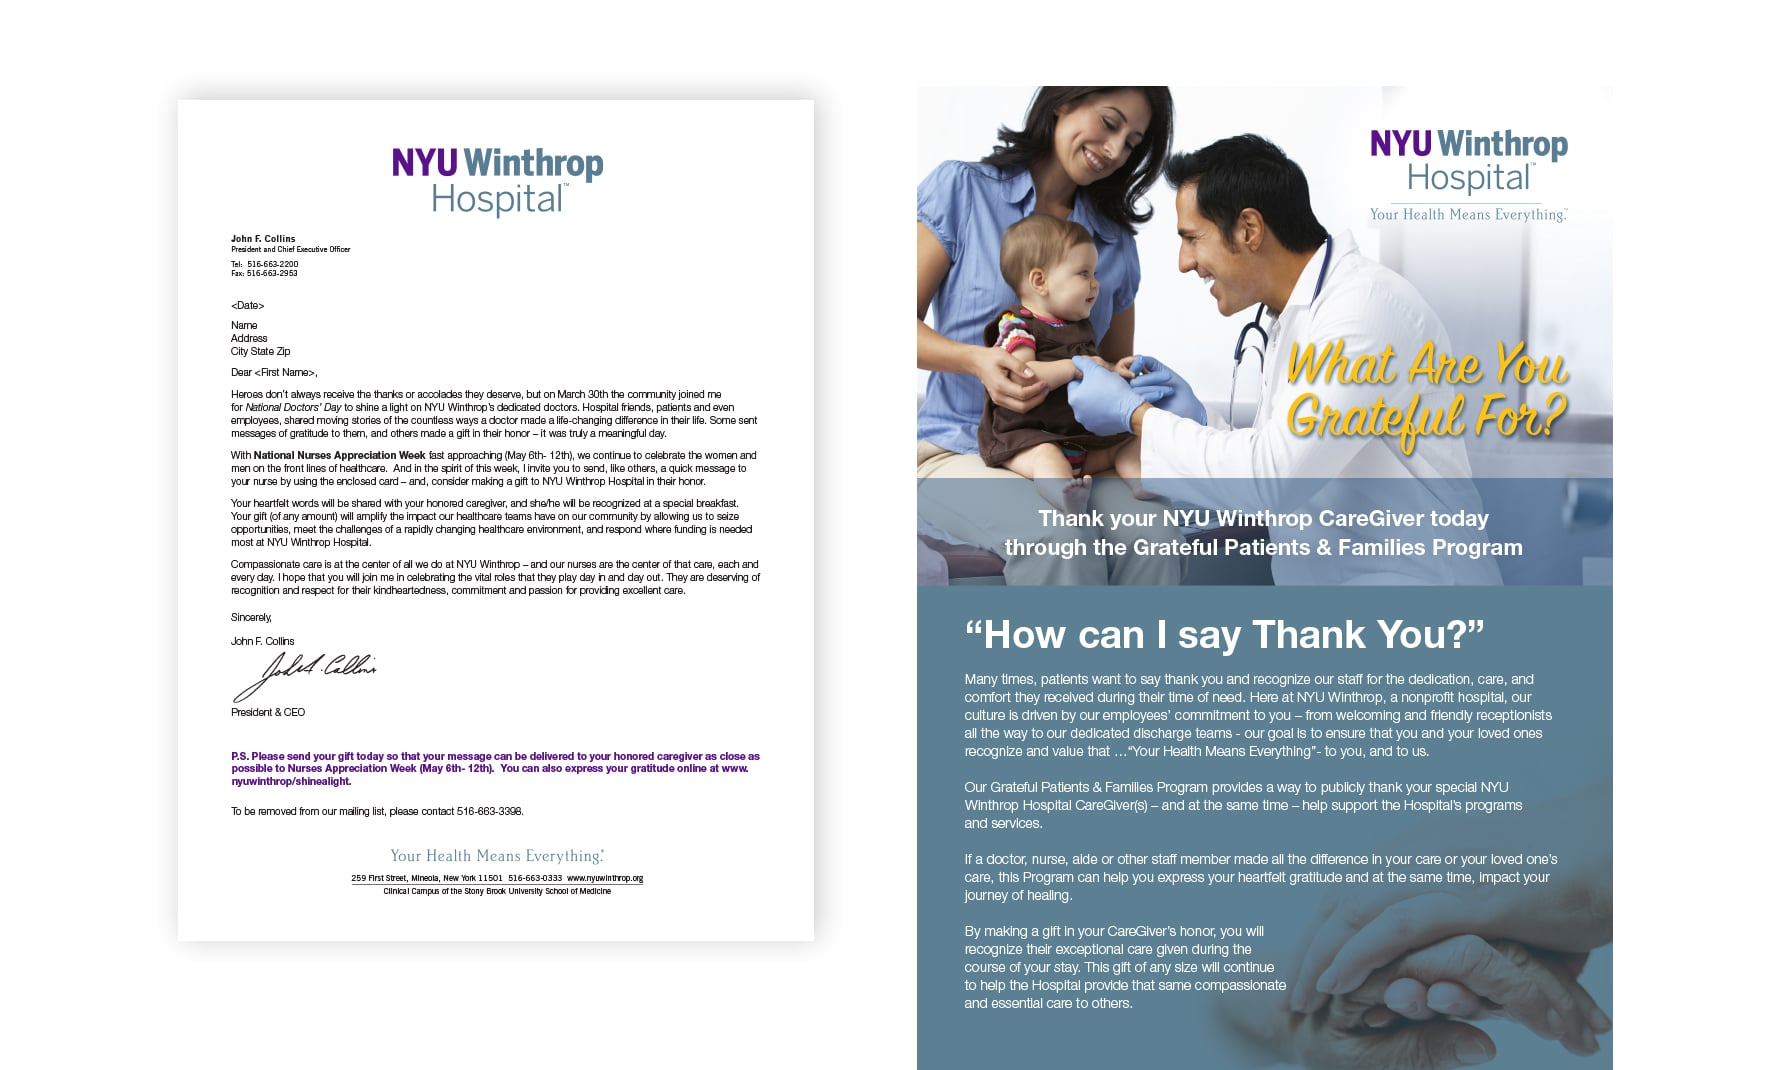 NYU Winthrop Hospital Direct Mail